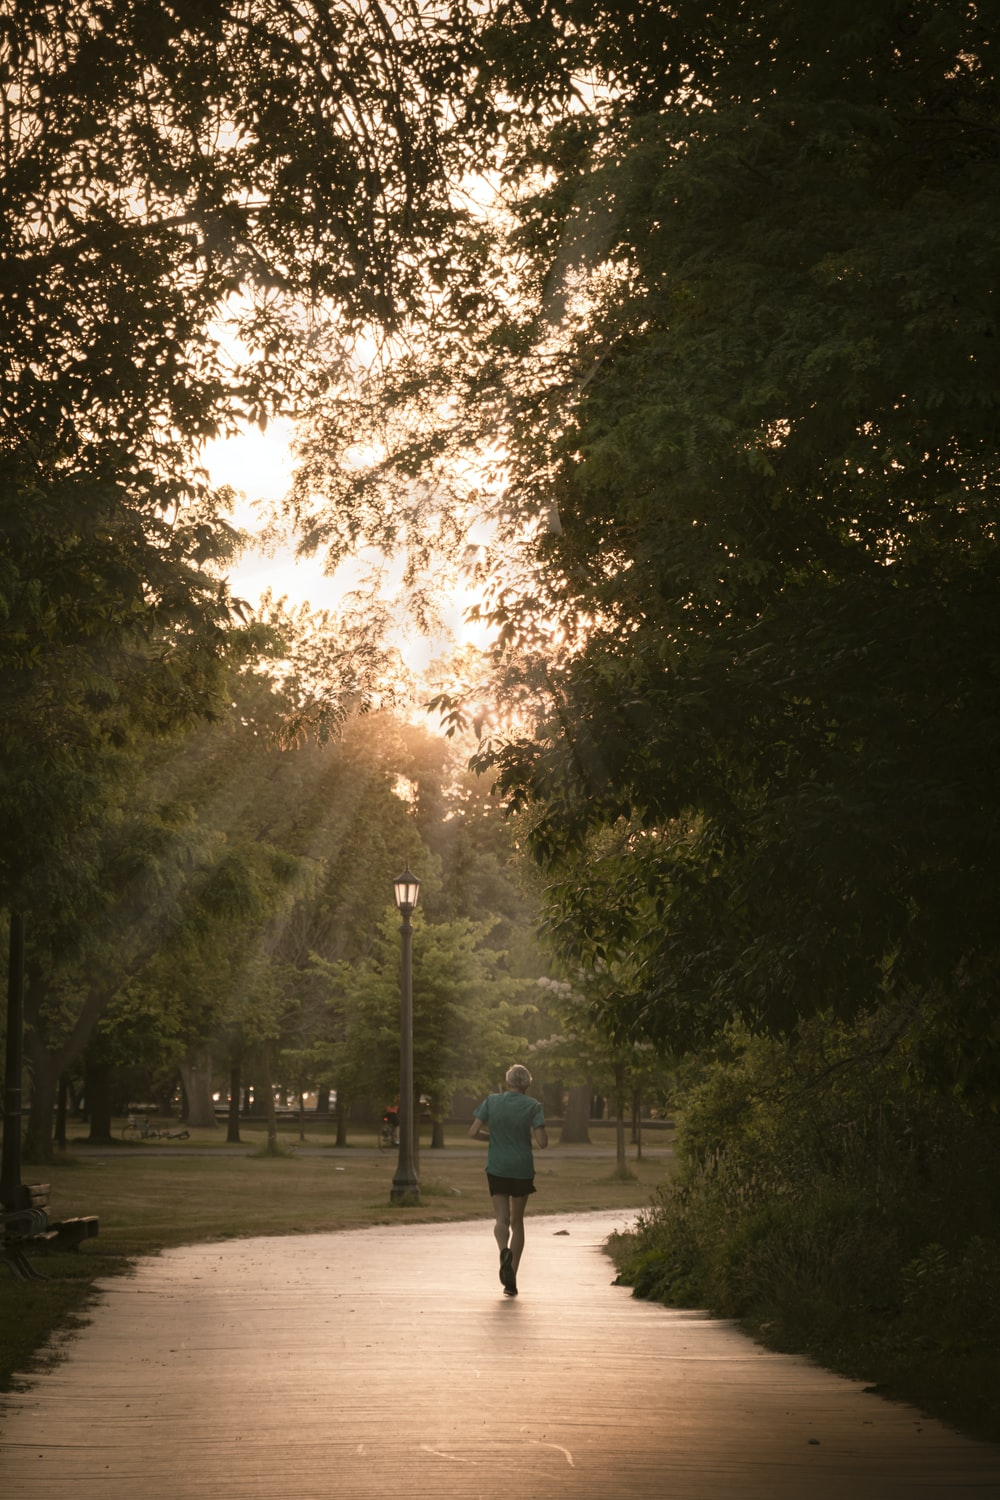 person in blue jacket walking on pathway between trees during daytime